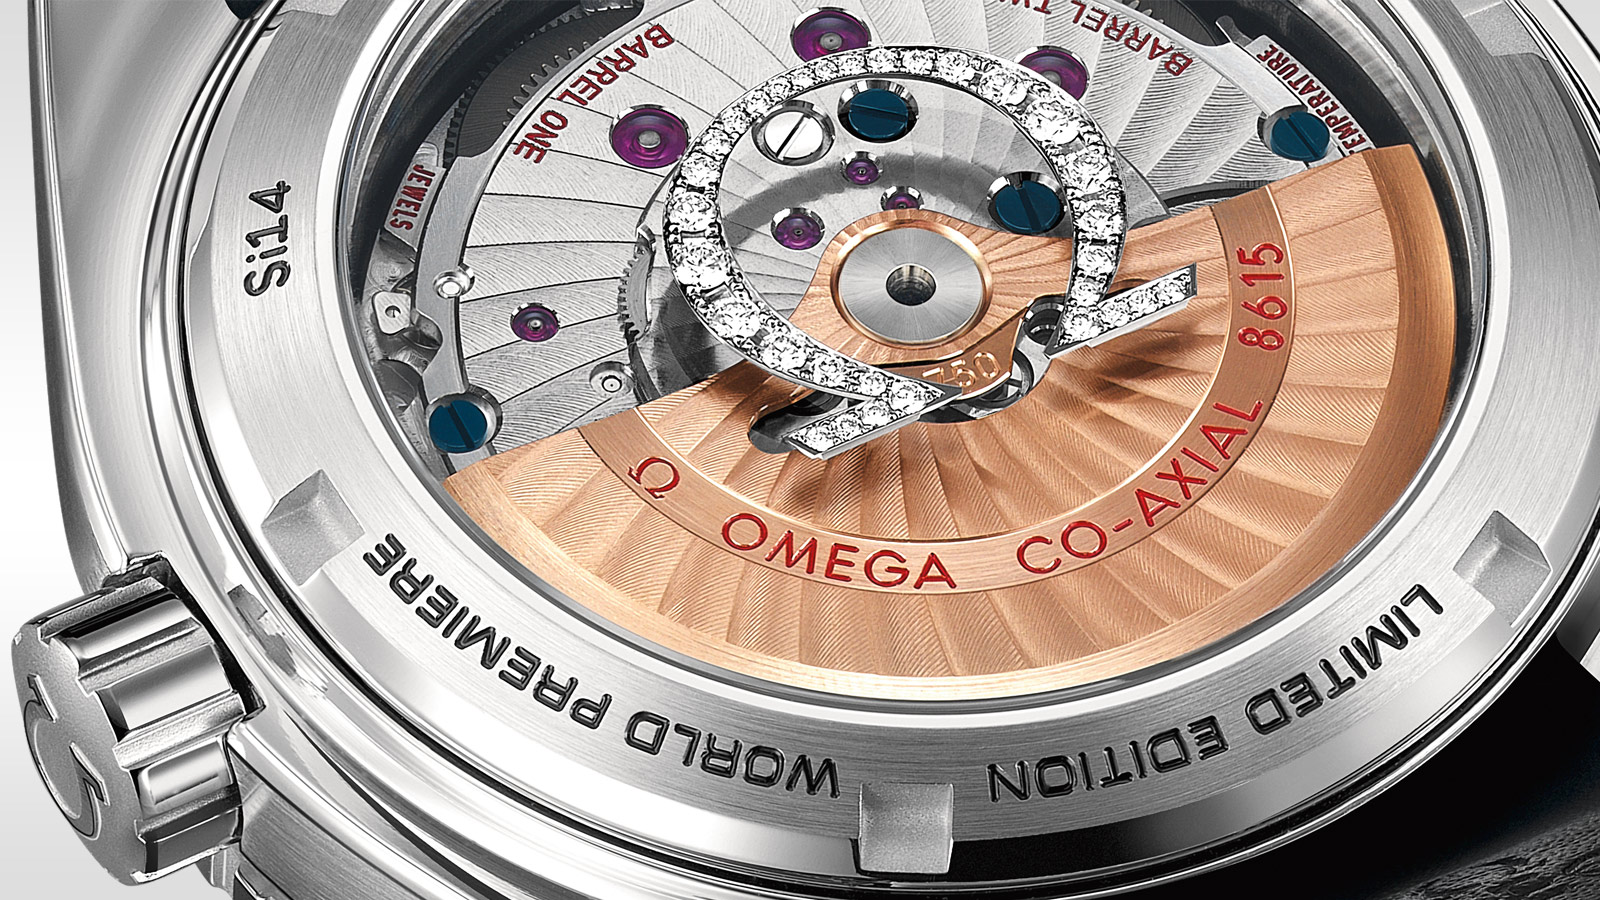 Seamaster Planet Ocean 600M Planet Ocean 600M Omega Co‑axial GMT 43.5 mm - 232.98.44.22.01.001 - View 2